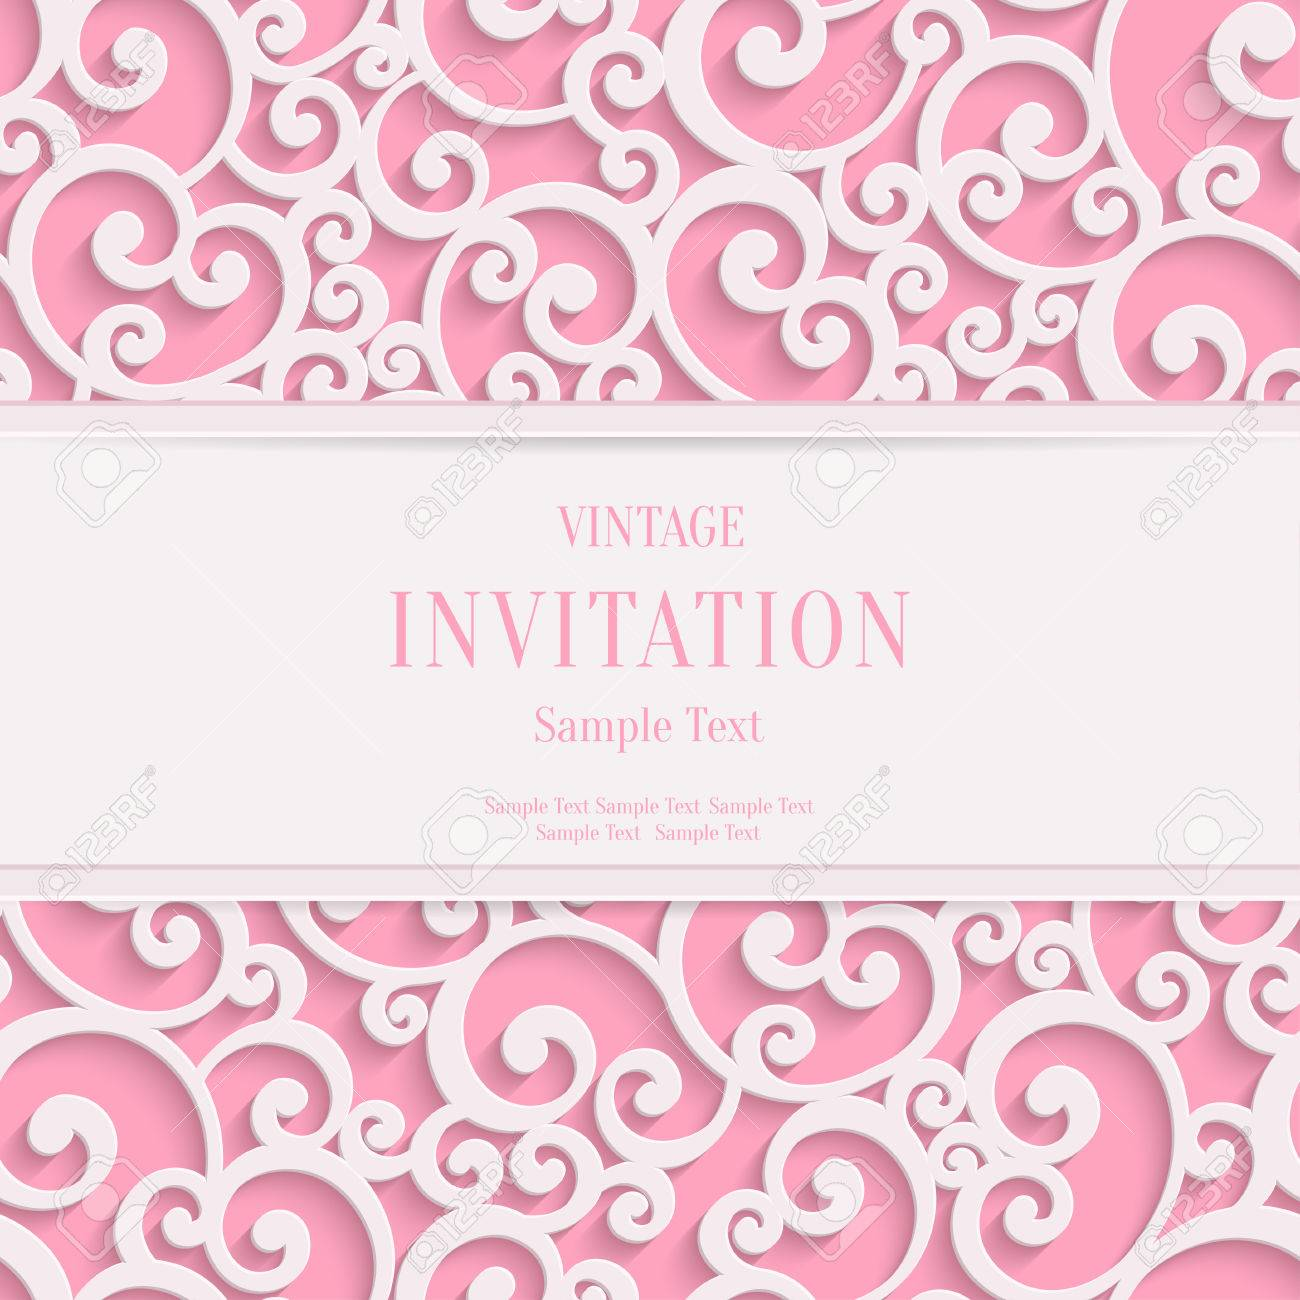 Vector Swirl Pink 3d Valentines or Wedding Invitation Cards Background with Curl Damask Pattern - 50855481